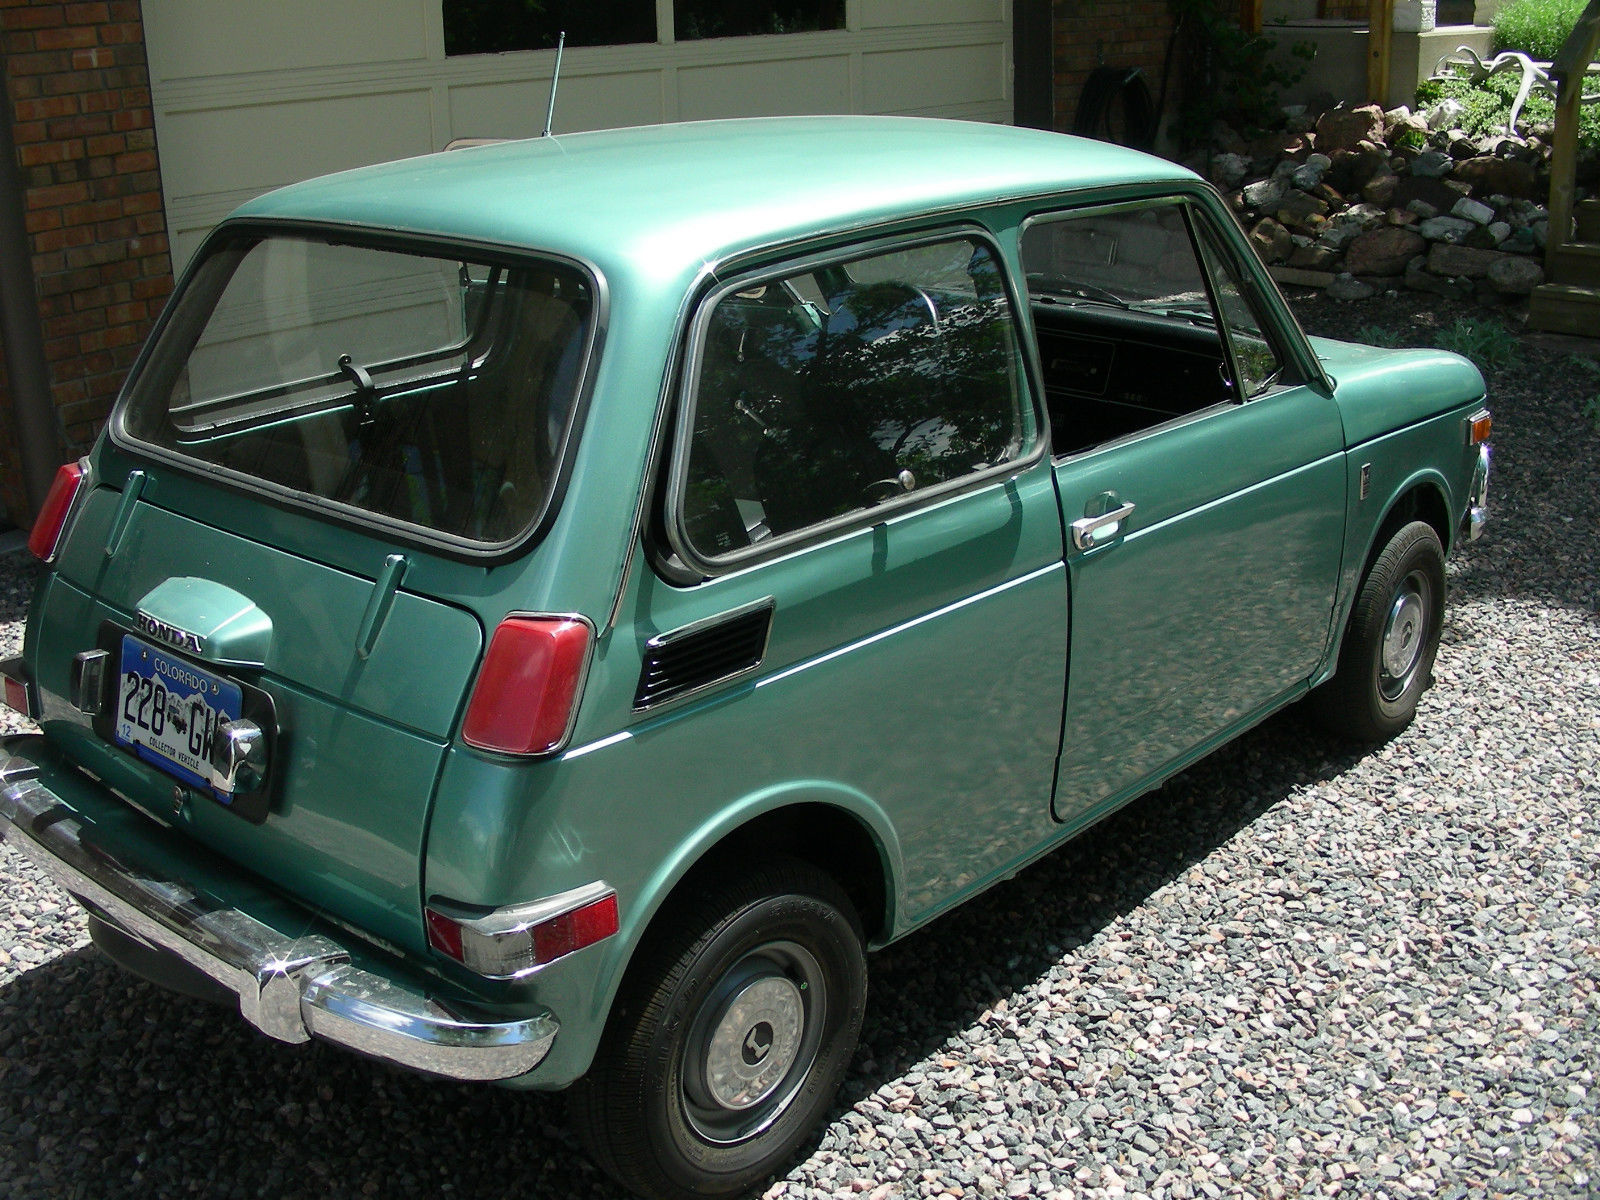 Immaculate Honda N600 Kei Car Is Looking For A New Home